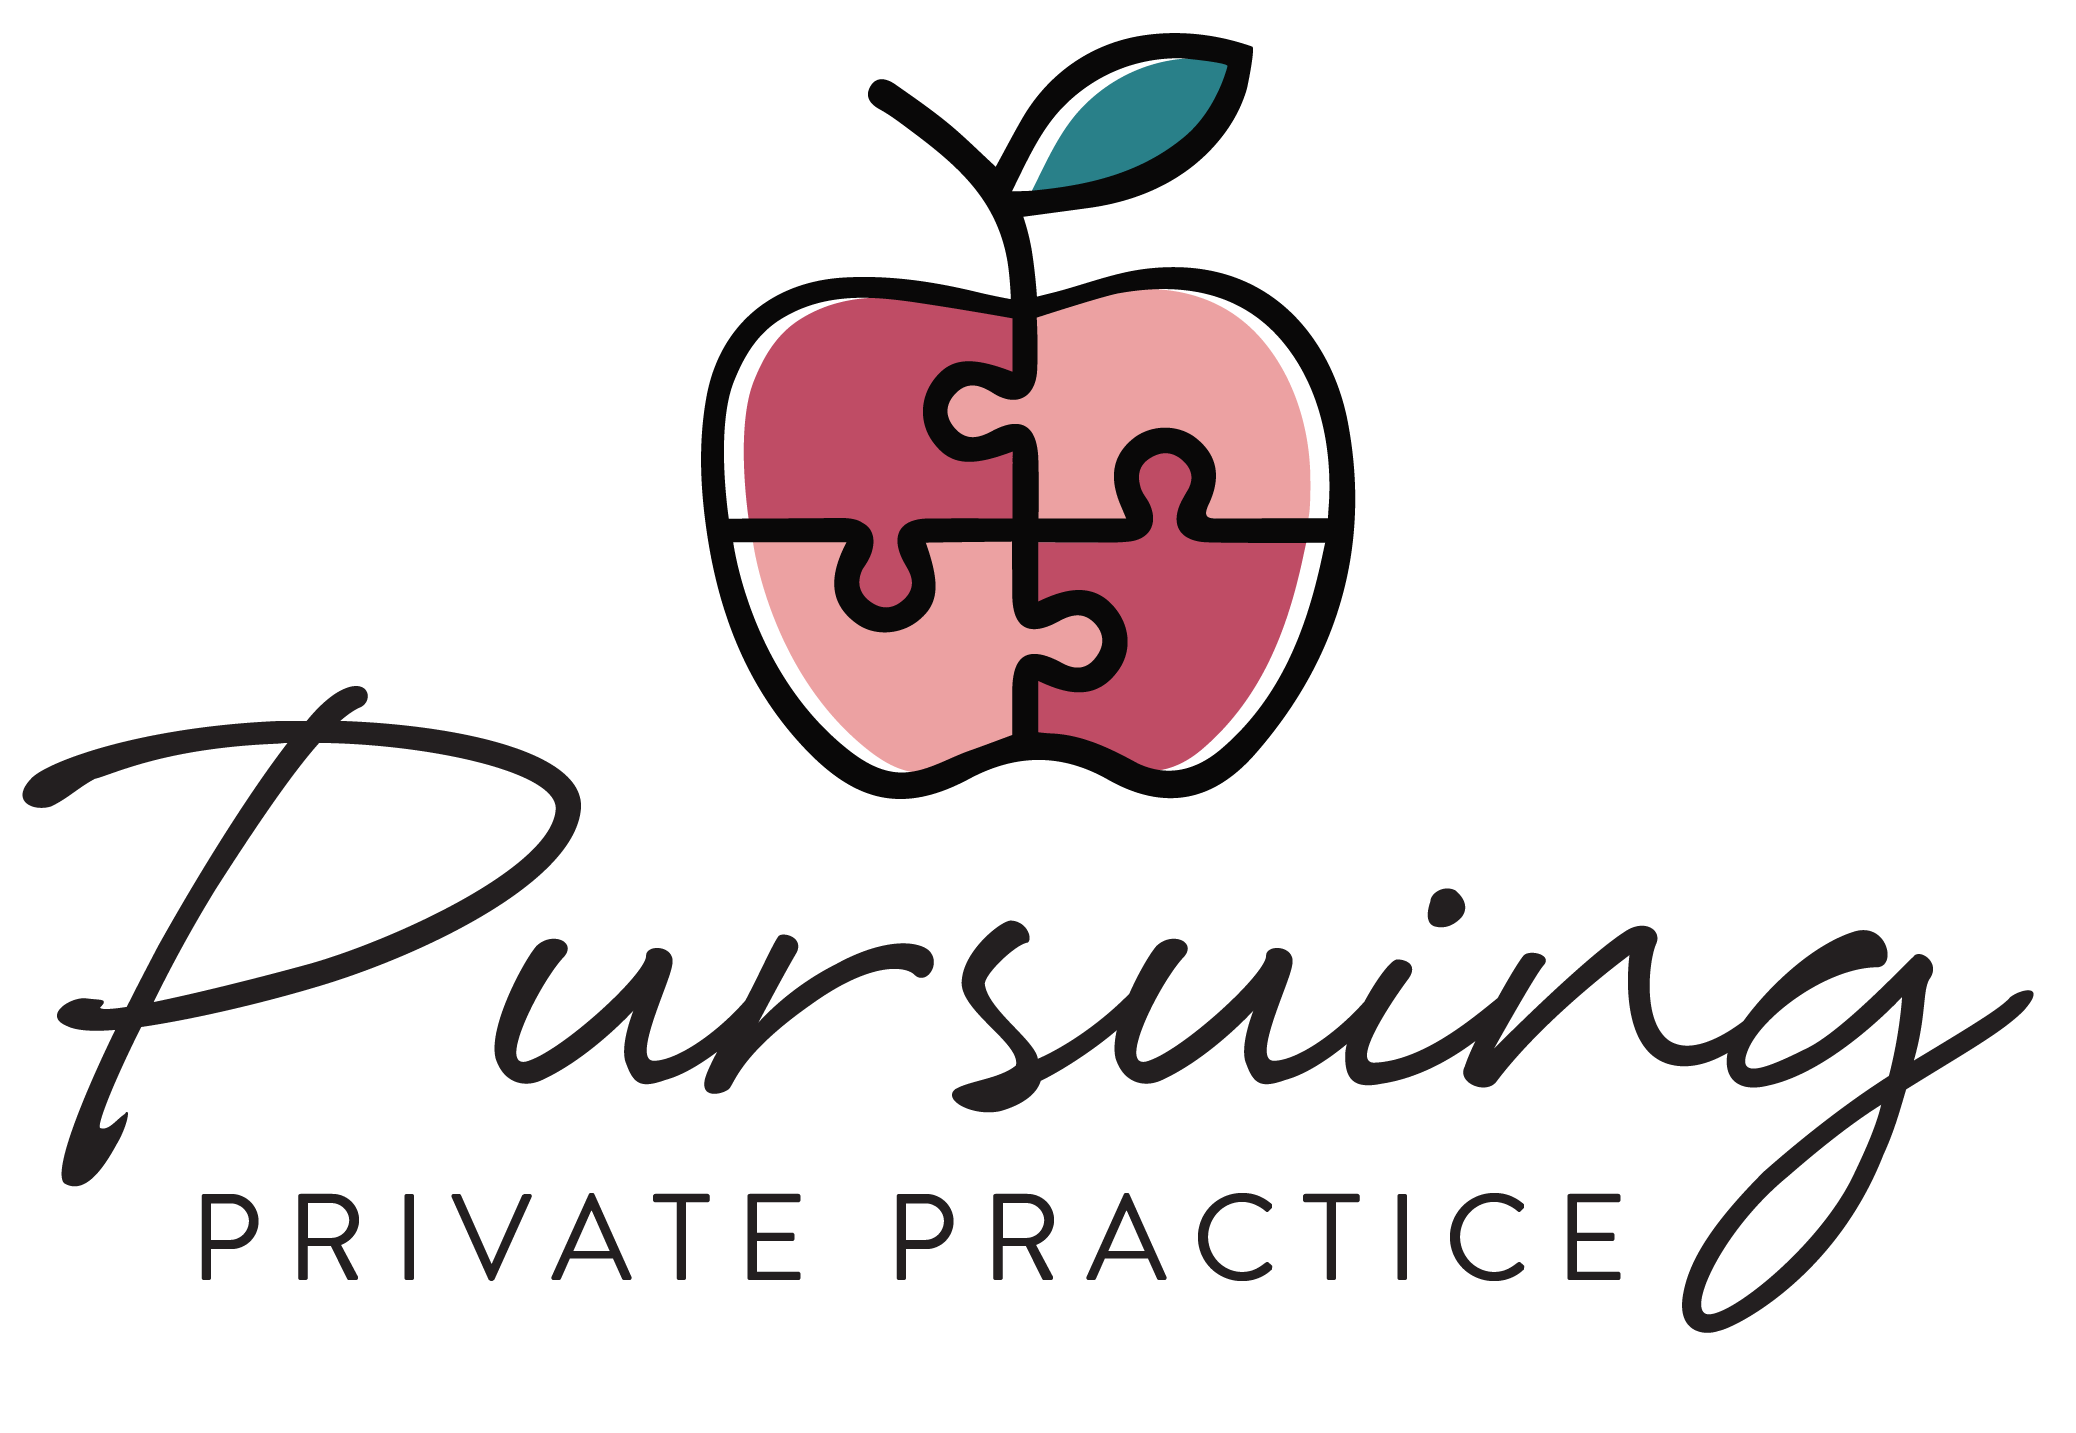 Pursuing Private Practice Logo